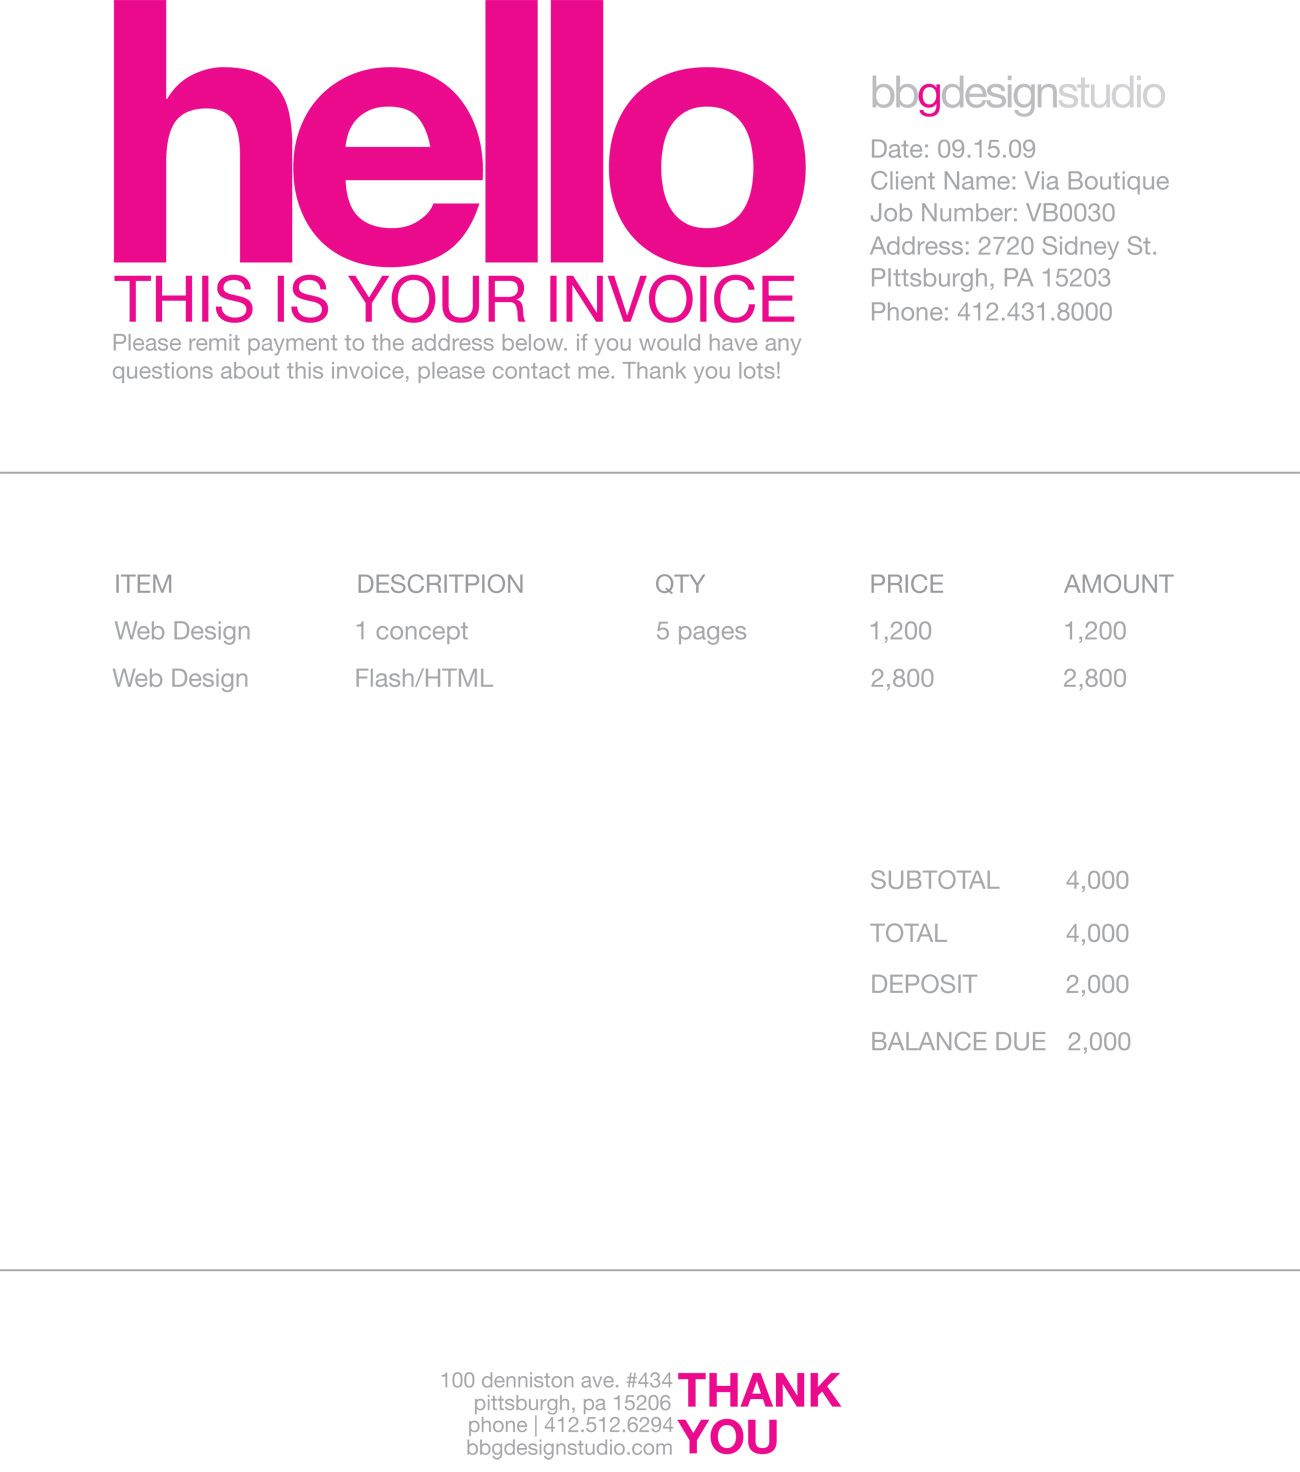 Soulfulpowerus  Inspiring  Images About Invoice Design On Pinterest With Glamorous Translation Invoice Sample Besides Perfoma Invoice Furthermore Online Invoice Template Free With Astonishing Invoice Tracking Software Free Also Po For Invoice In Addition Microsoft Word  Invoice Template And Invoice Discounting Rates As Well As Blank Invoice Template Doc Additionally Invoice Collection From Pinterestcom With Soulfulpowerus  Glamorous  Images About Invoice Design On Pinterest With Astonishing Translation Invoice Sample Besides Perfoma Invoice Furthermore Online Invoice Template Free And Inspiring Invoice Tracking Software Free Also Po For Invoice In Addition Microsoft Word  Invoice Template From Pinterestcom